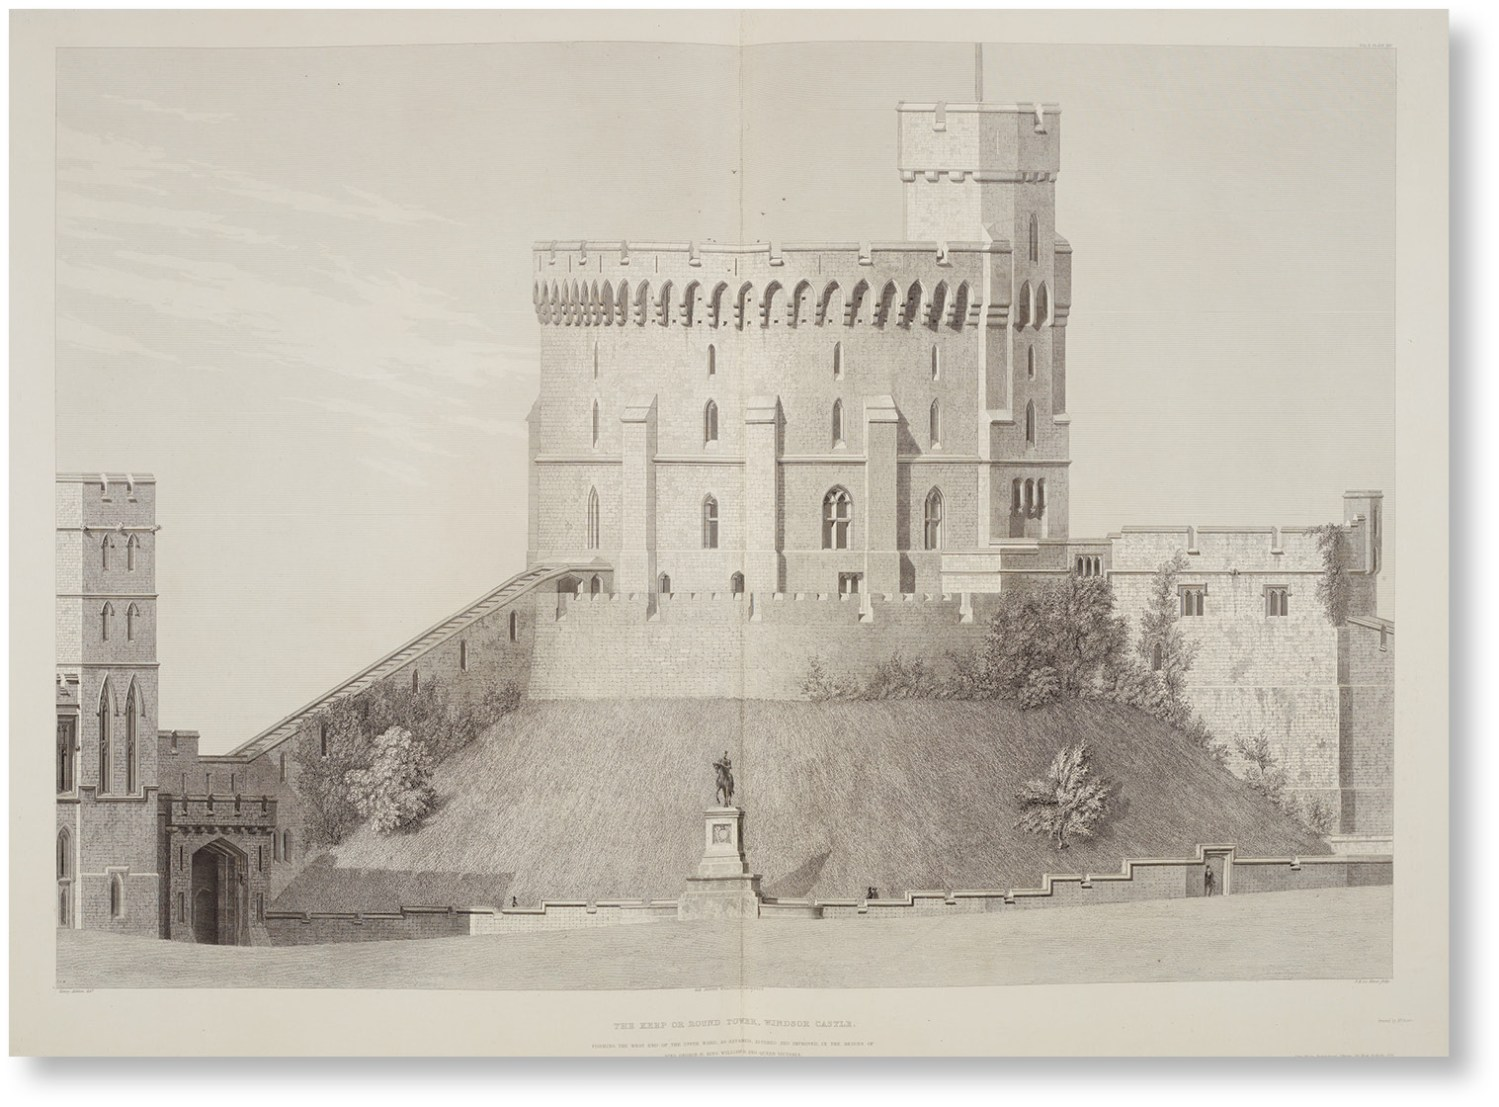 left The Round Tower, as drawn by Benjamin Baud and engraved by William Starling for Ashton and Wyatville's Illustrations of Windsor Castle (1841). Subtle alterations to the Round Tower carried out by Wyatville in the 1820s made the shell keep taller, doubling its height and making it a central feature of the castle's skyline.